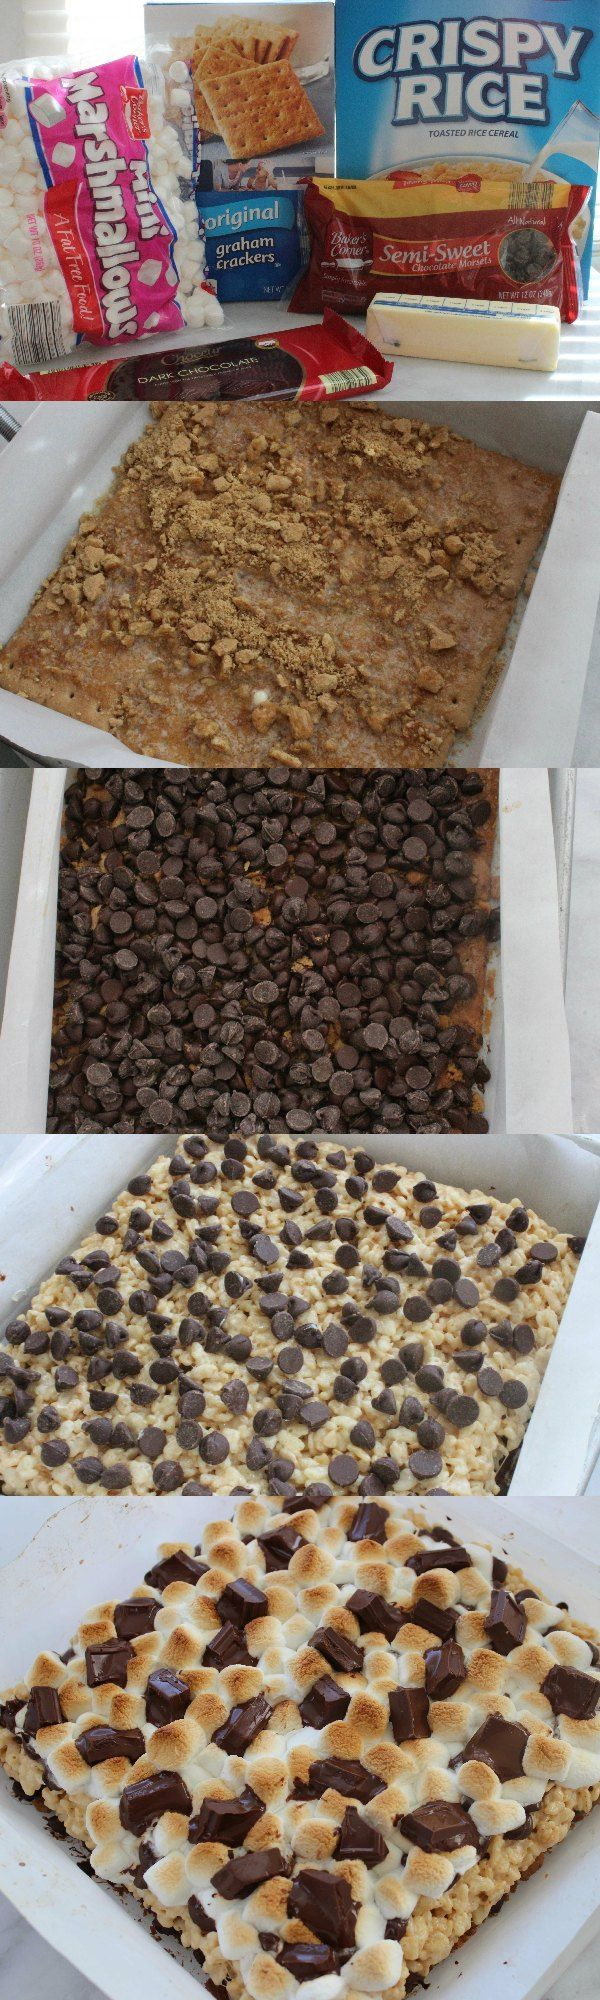 These S'Mores Krispie Treats combines your favorite Rice Krispie Treats cereal with the taste of your favorite classic S'mores recipes for a yummy summertime treat that you and your family are sure to love. Delicious dessert bars that will surely be a hit at your next party!